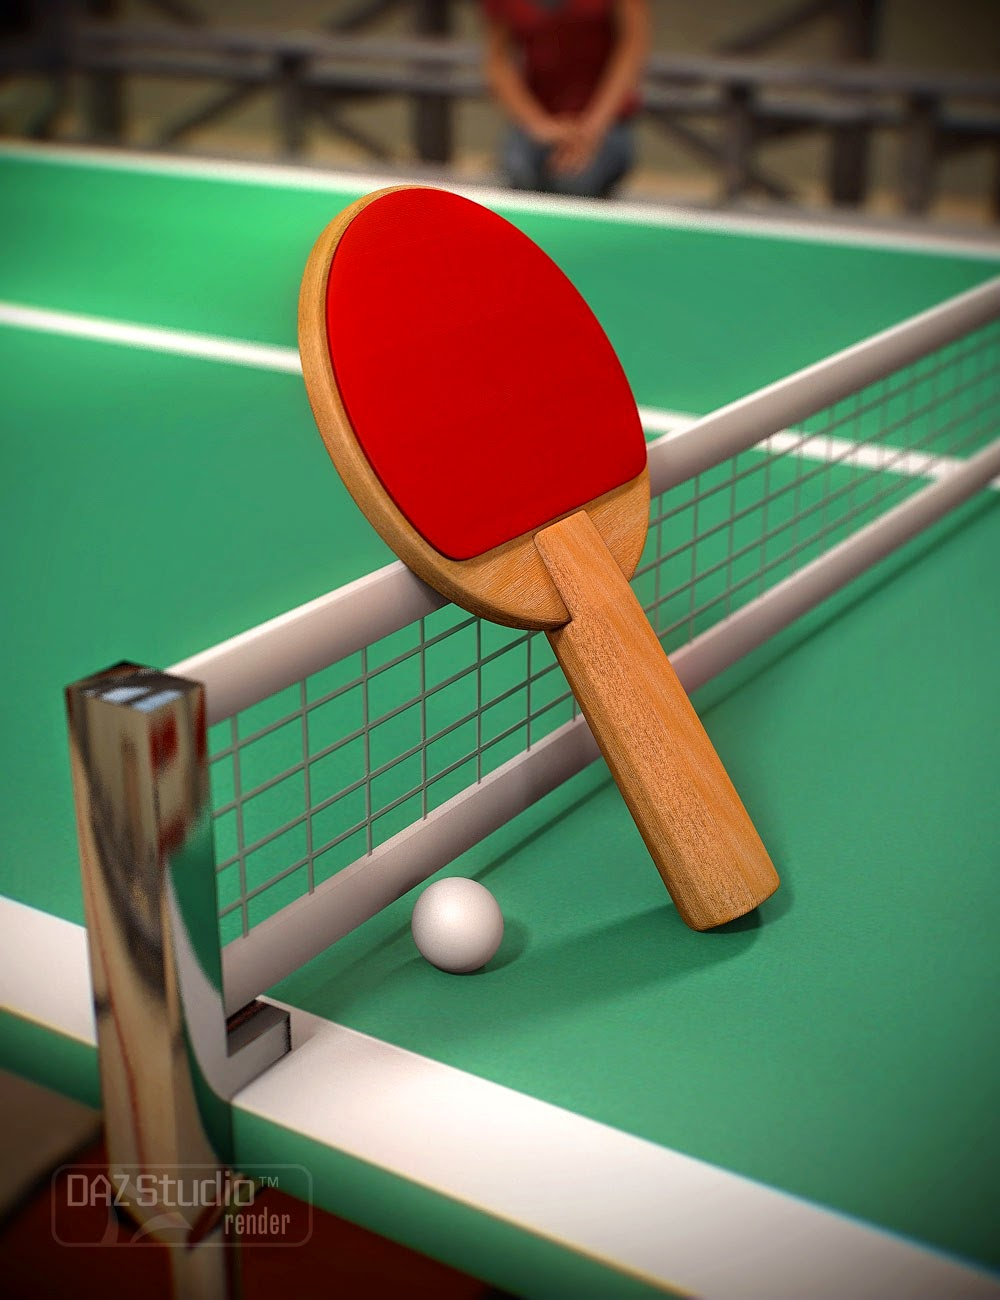 Download daz studio 3 for free daz 3d table tennis for Table tennis